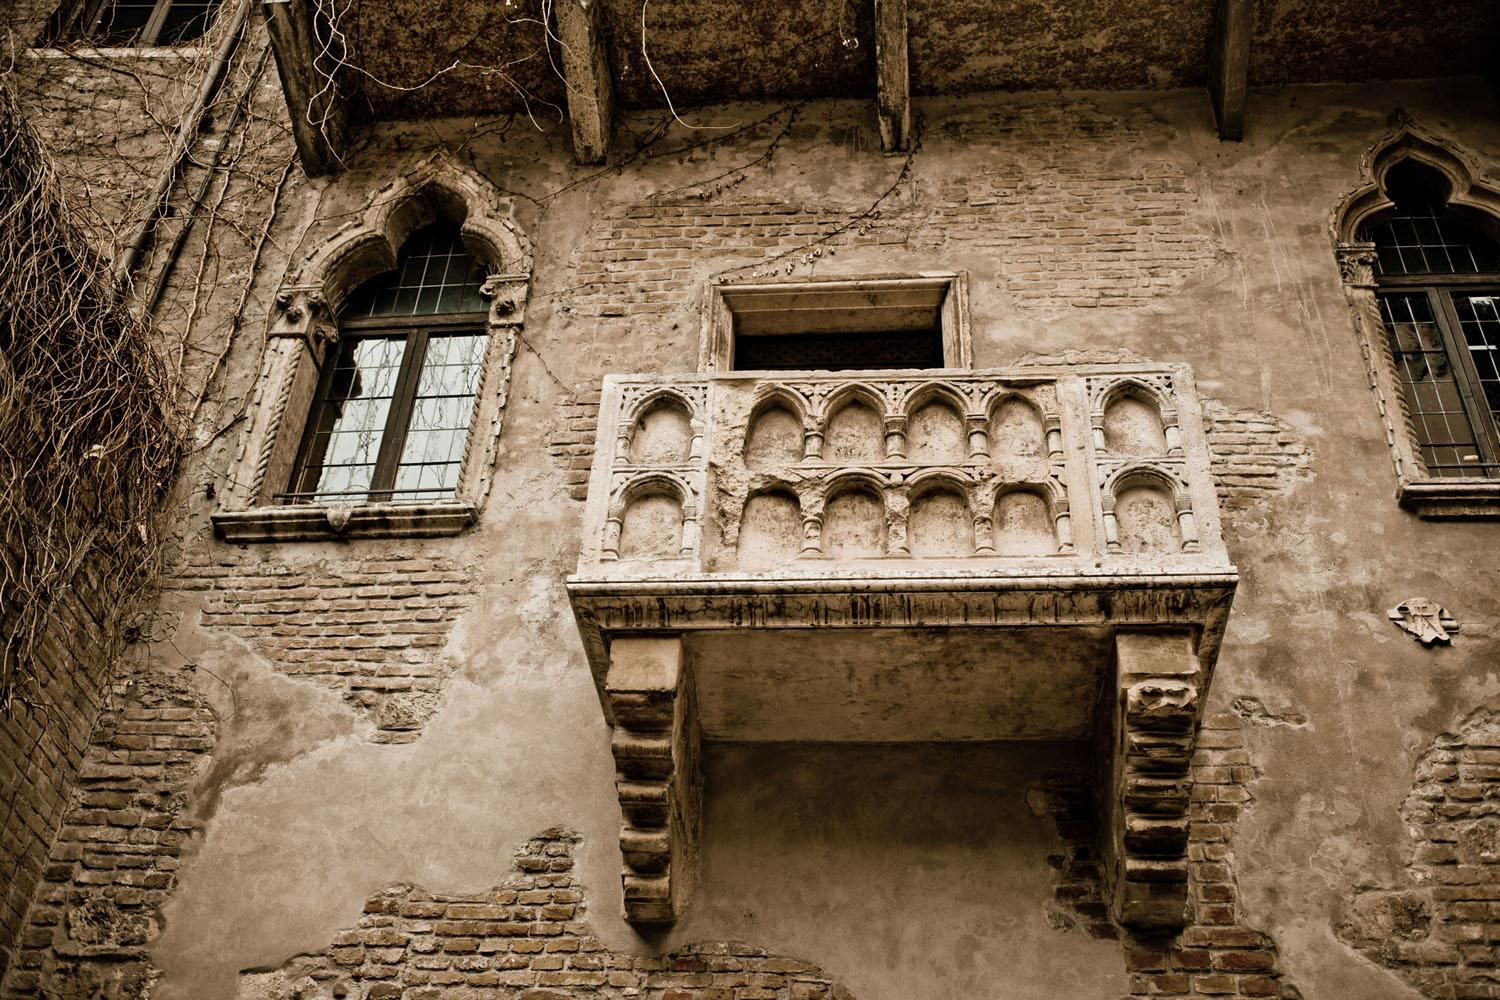 A fascinating walking tour of Verona where you'll learn the history of the city from Roman Times to